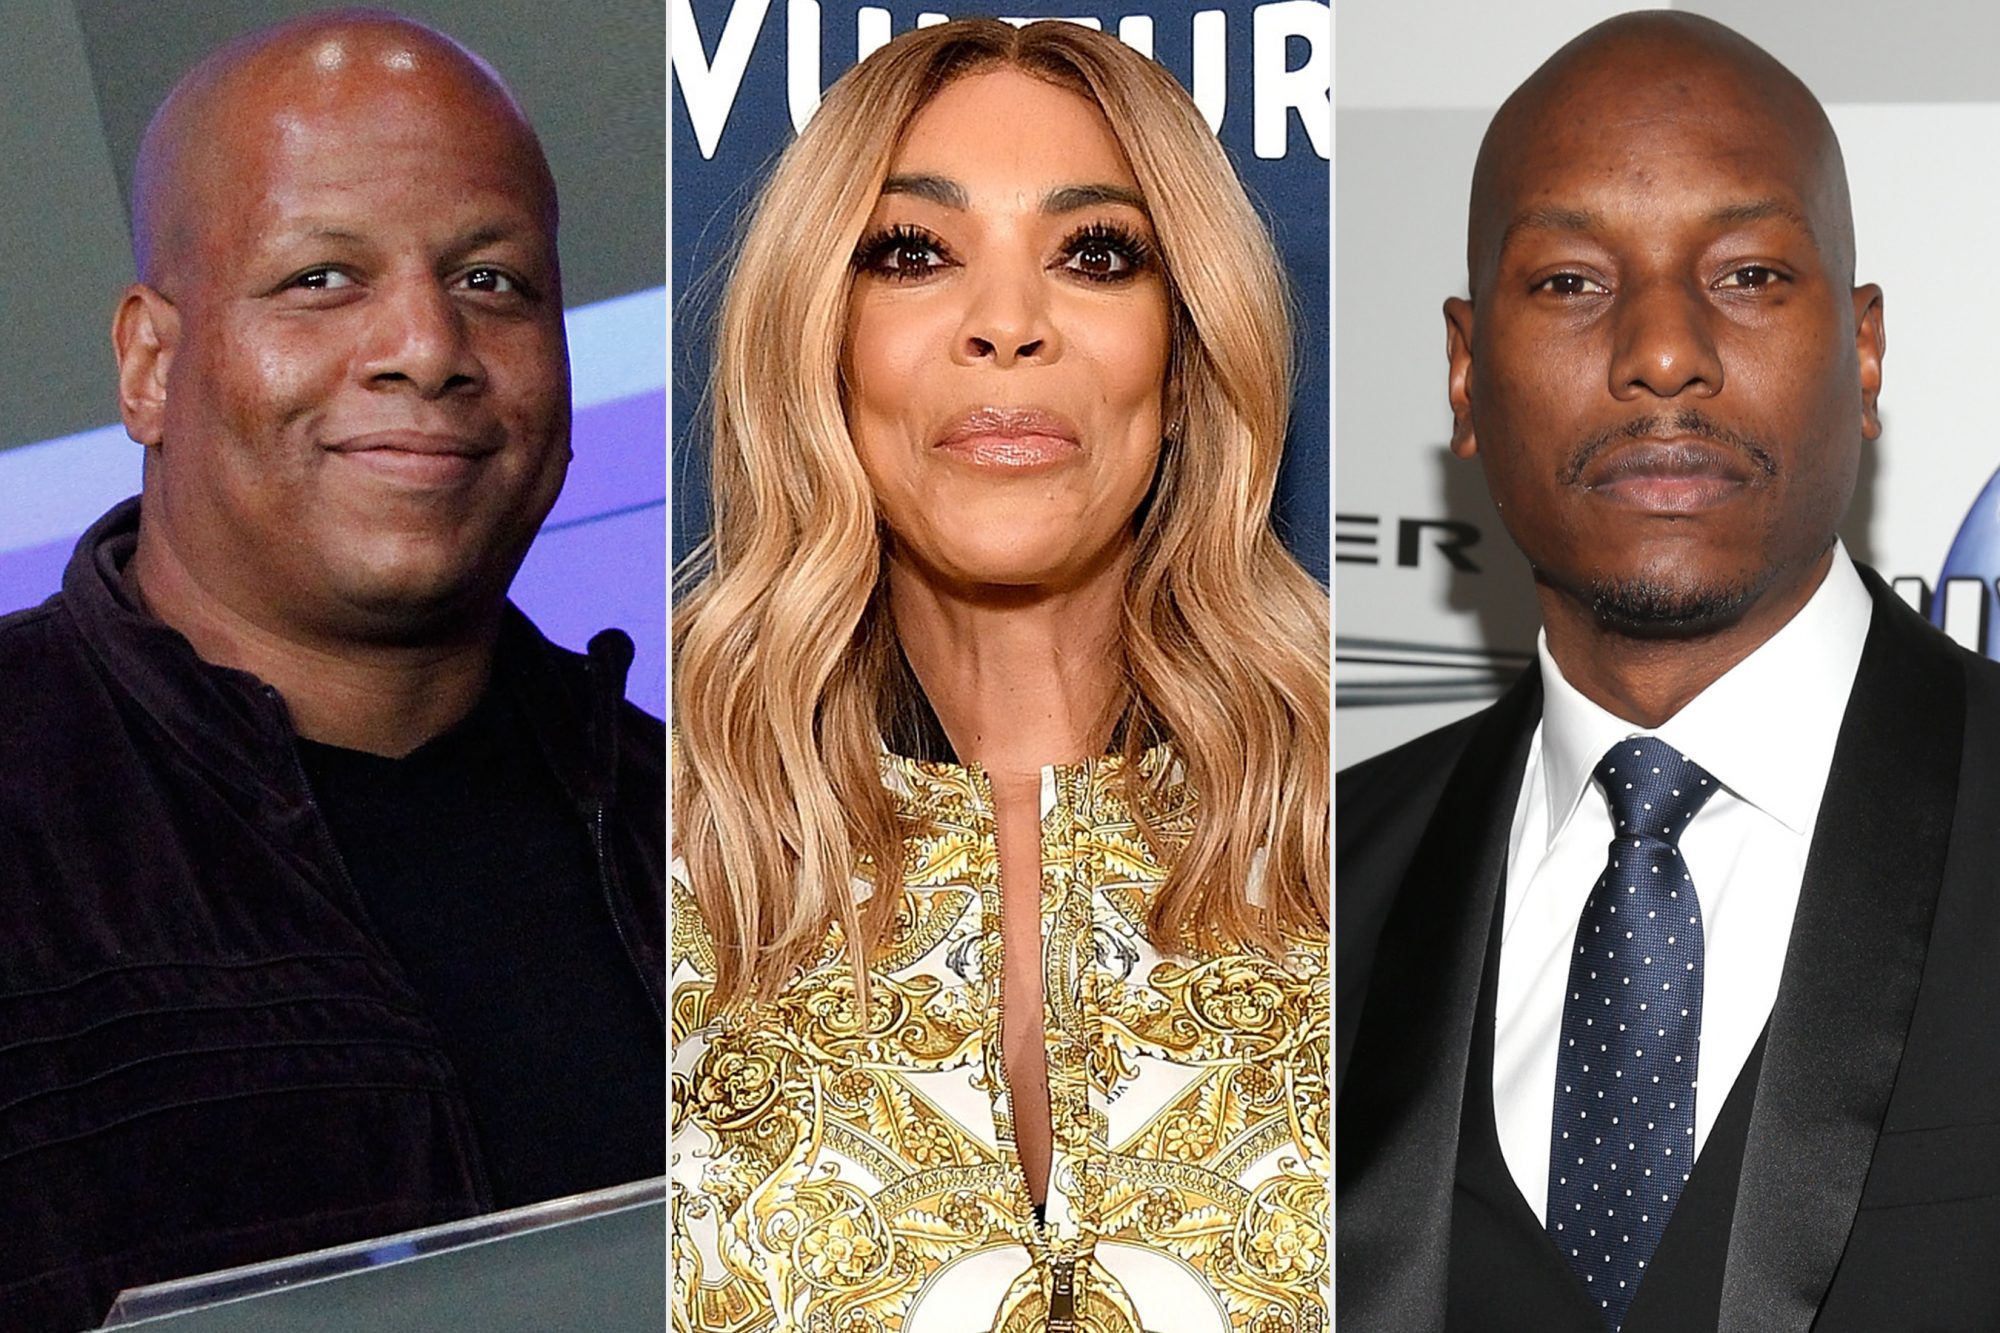 Kevin Hunter, Wendy Williams, Tyrese Gibson